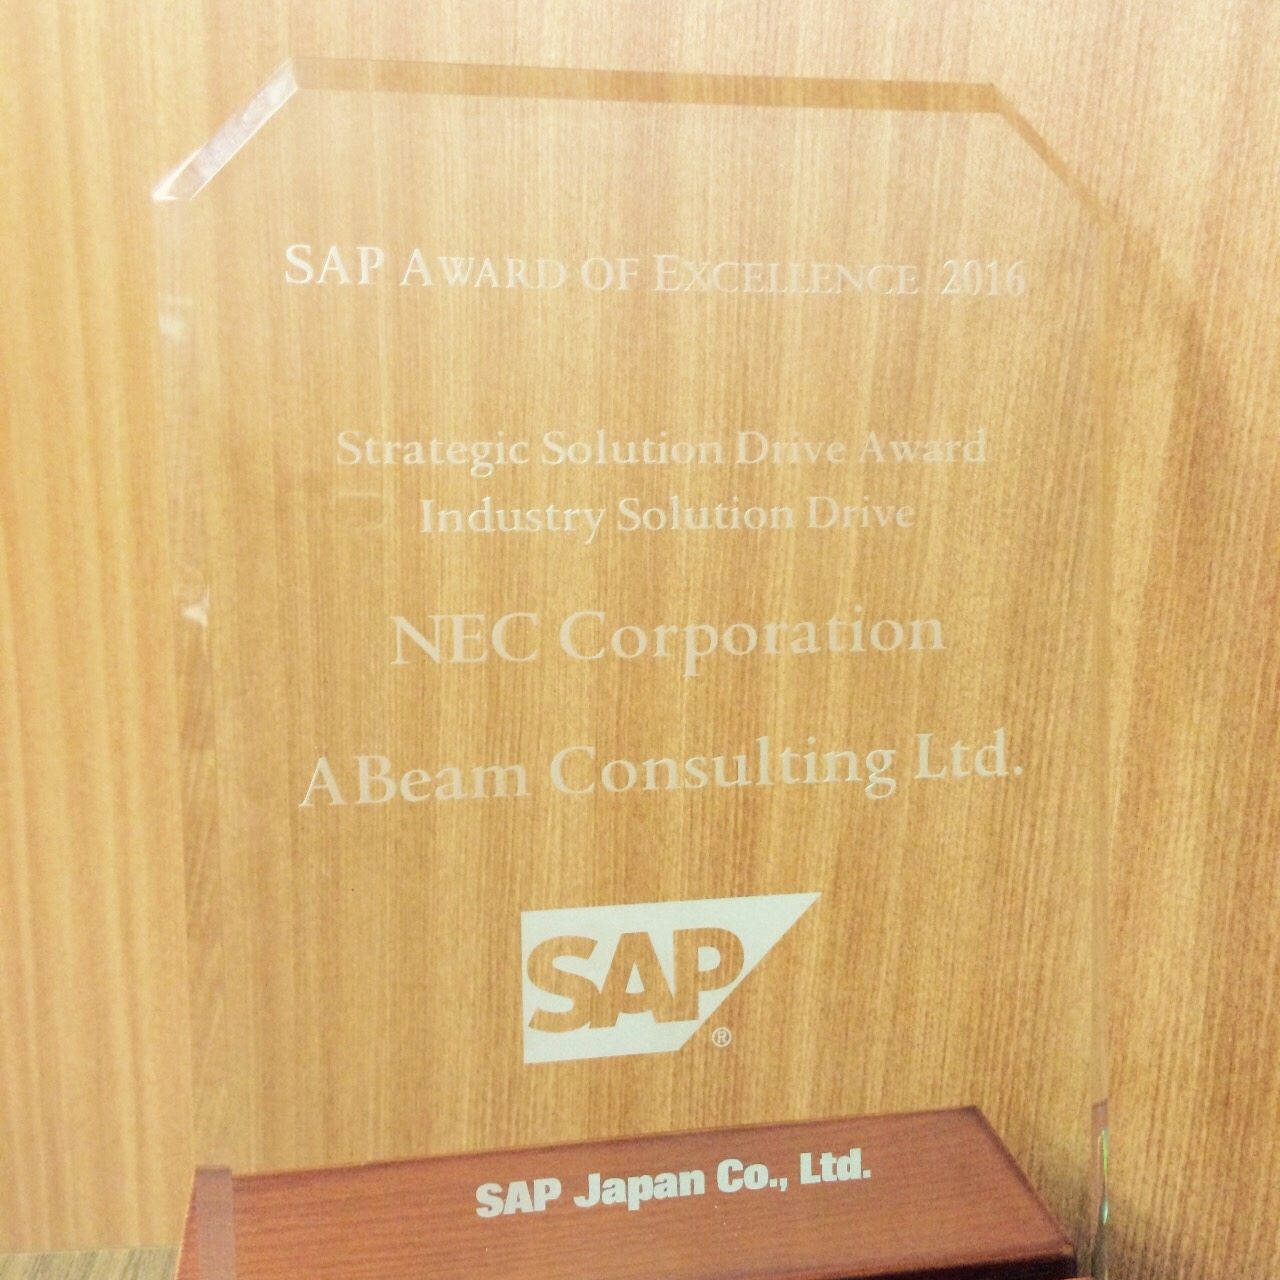 SAP AWARD OF EXCELLENCE 2016「Industory Solution Drive Award」受賞